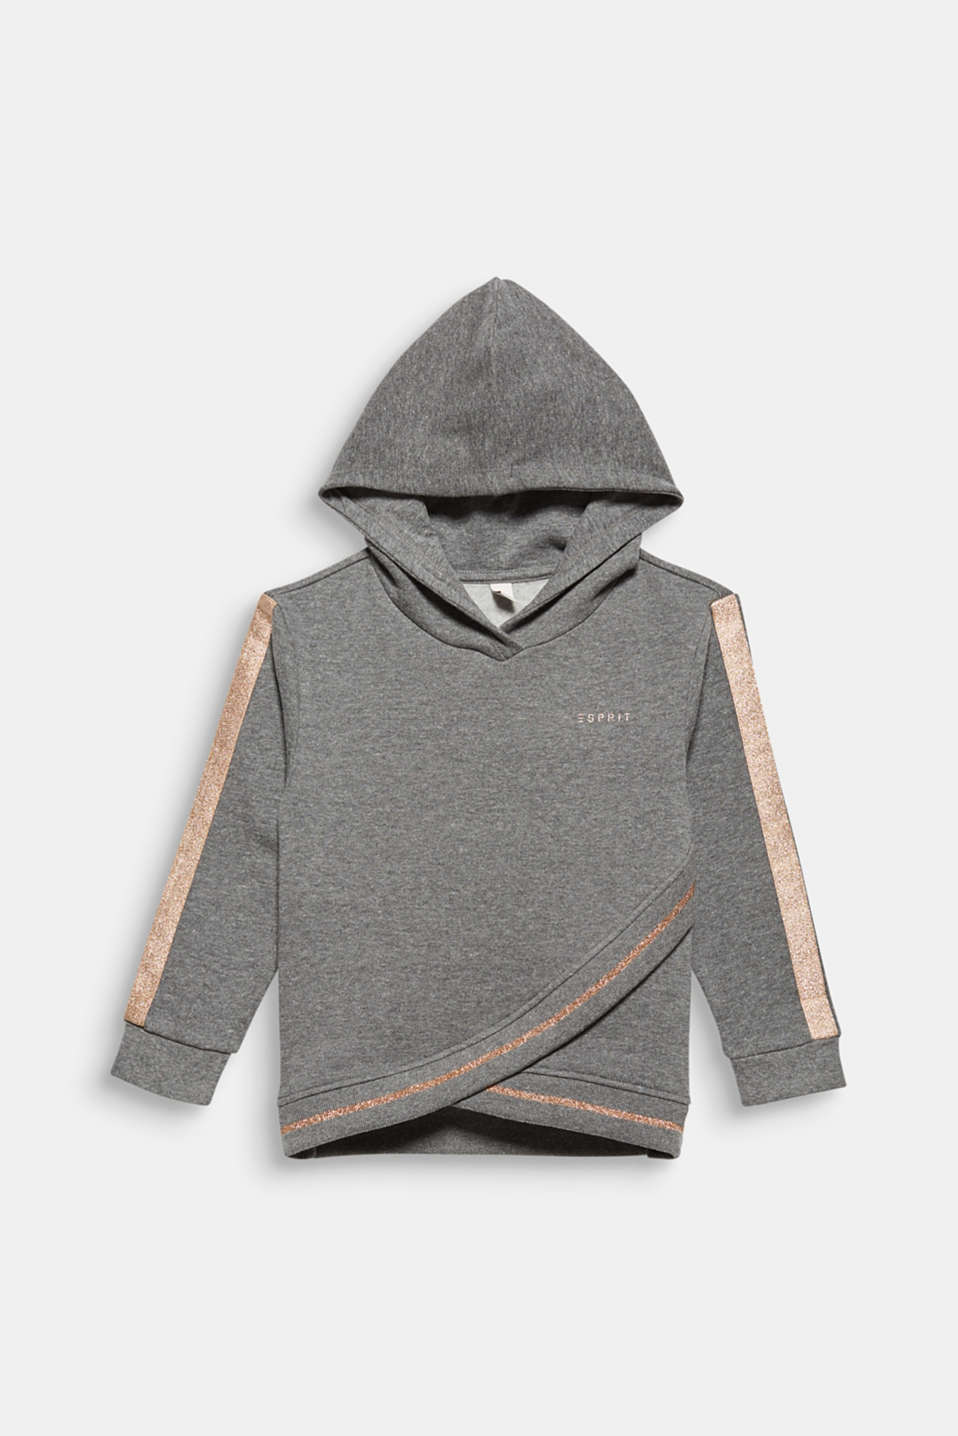 Sweatshirt fabric hoodie with glitter details, DARK HEATHER G, detail image number 0